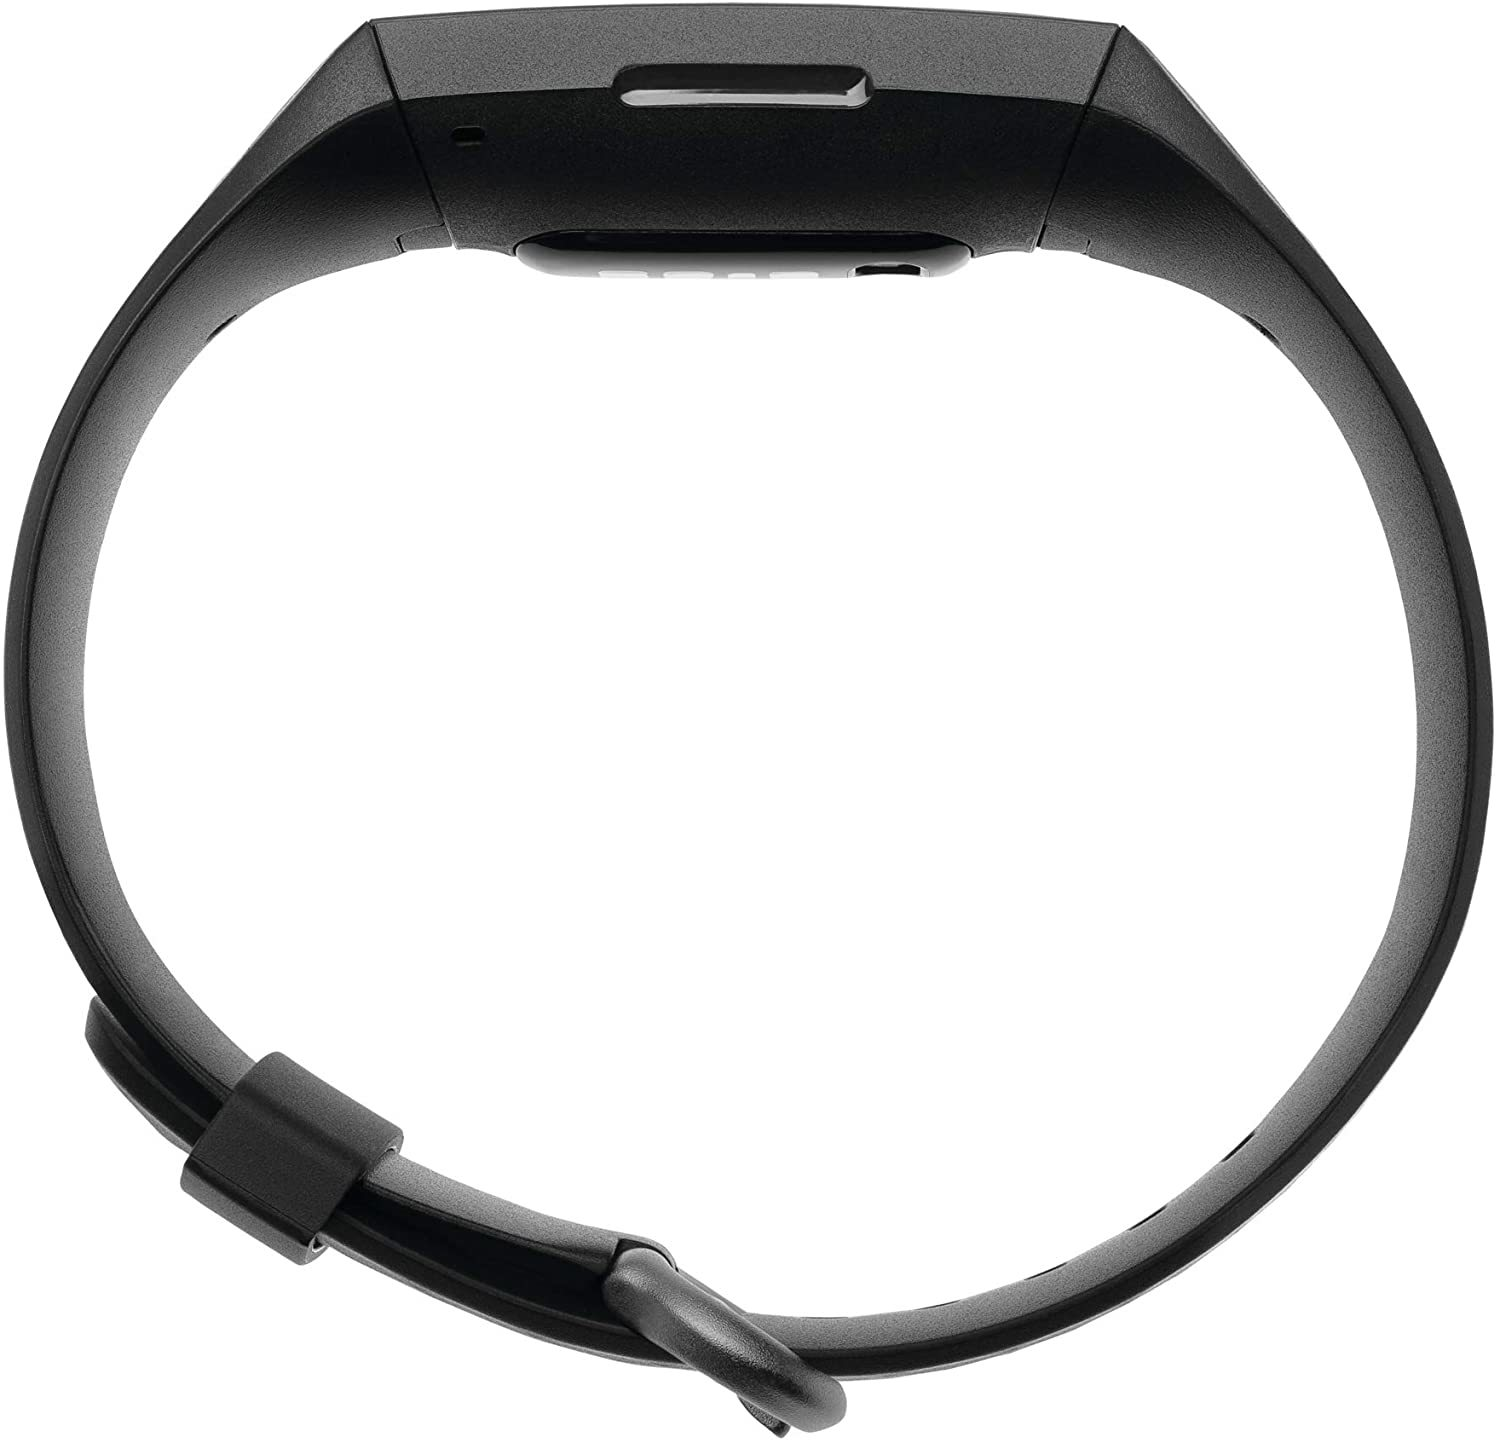 Fitbit Charge 4 Fitness Tracker - Black/Black image